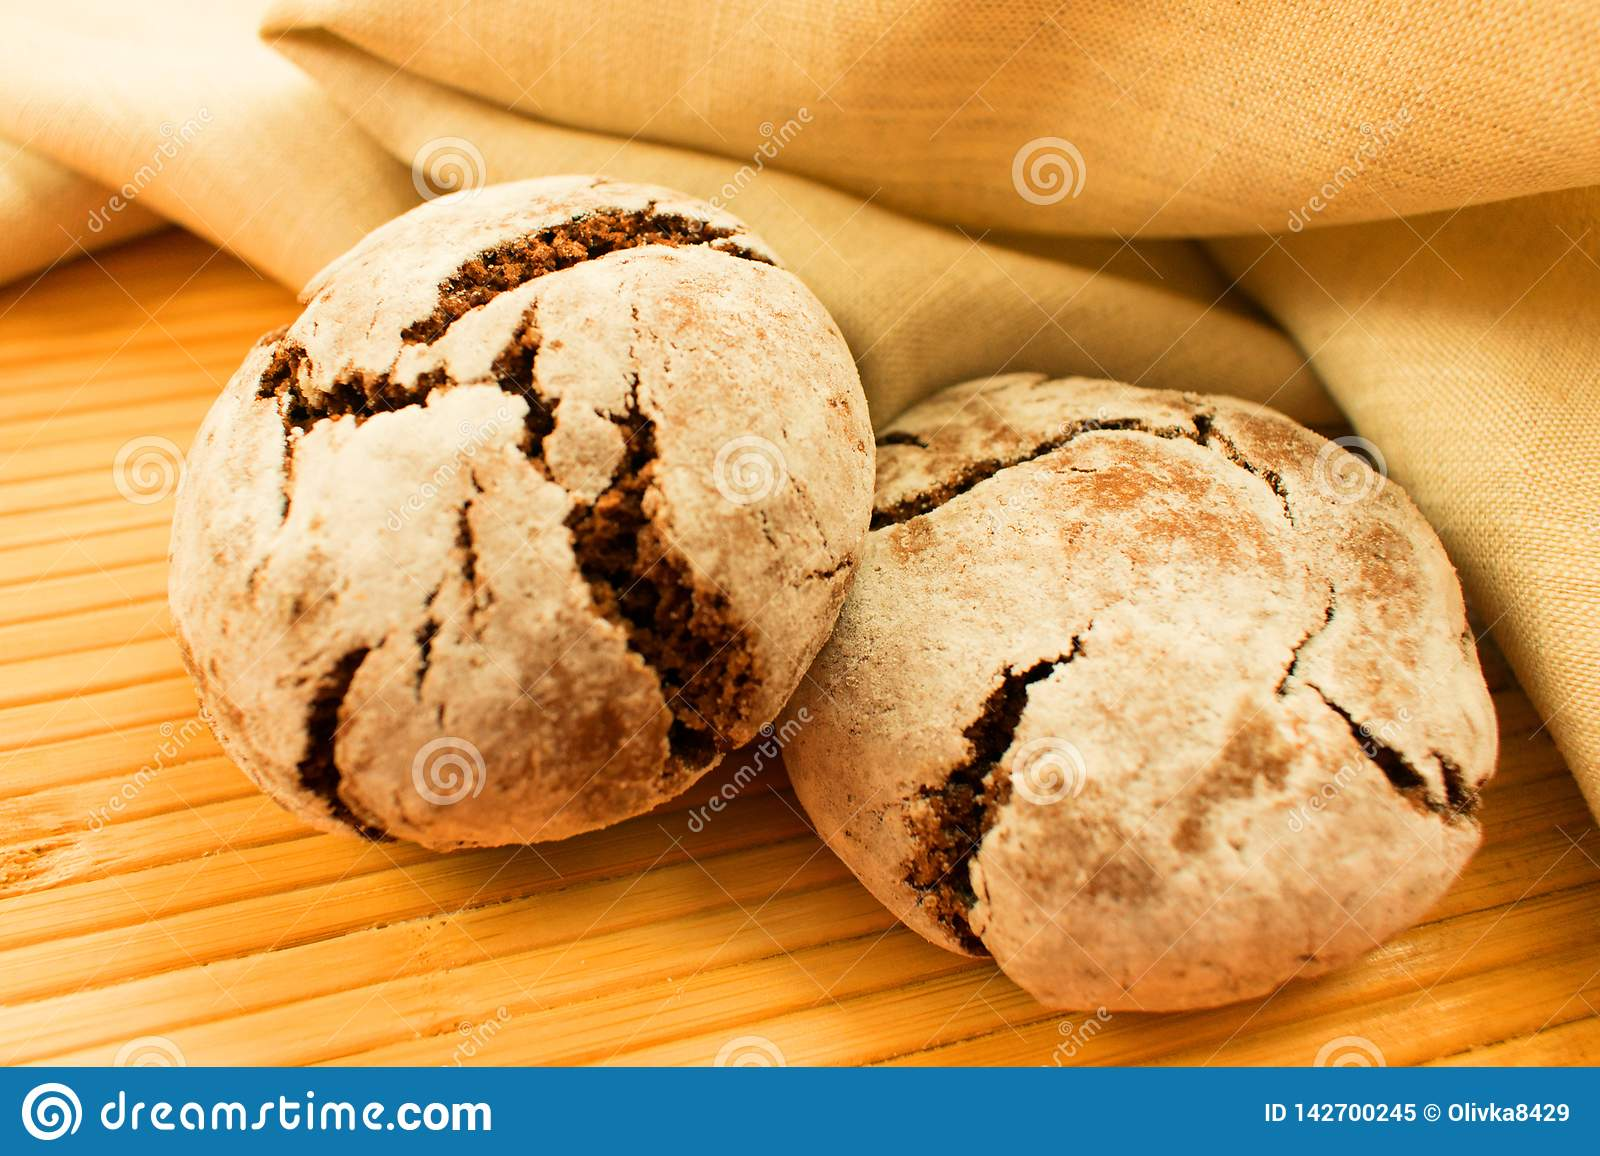 Rye bread on the table